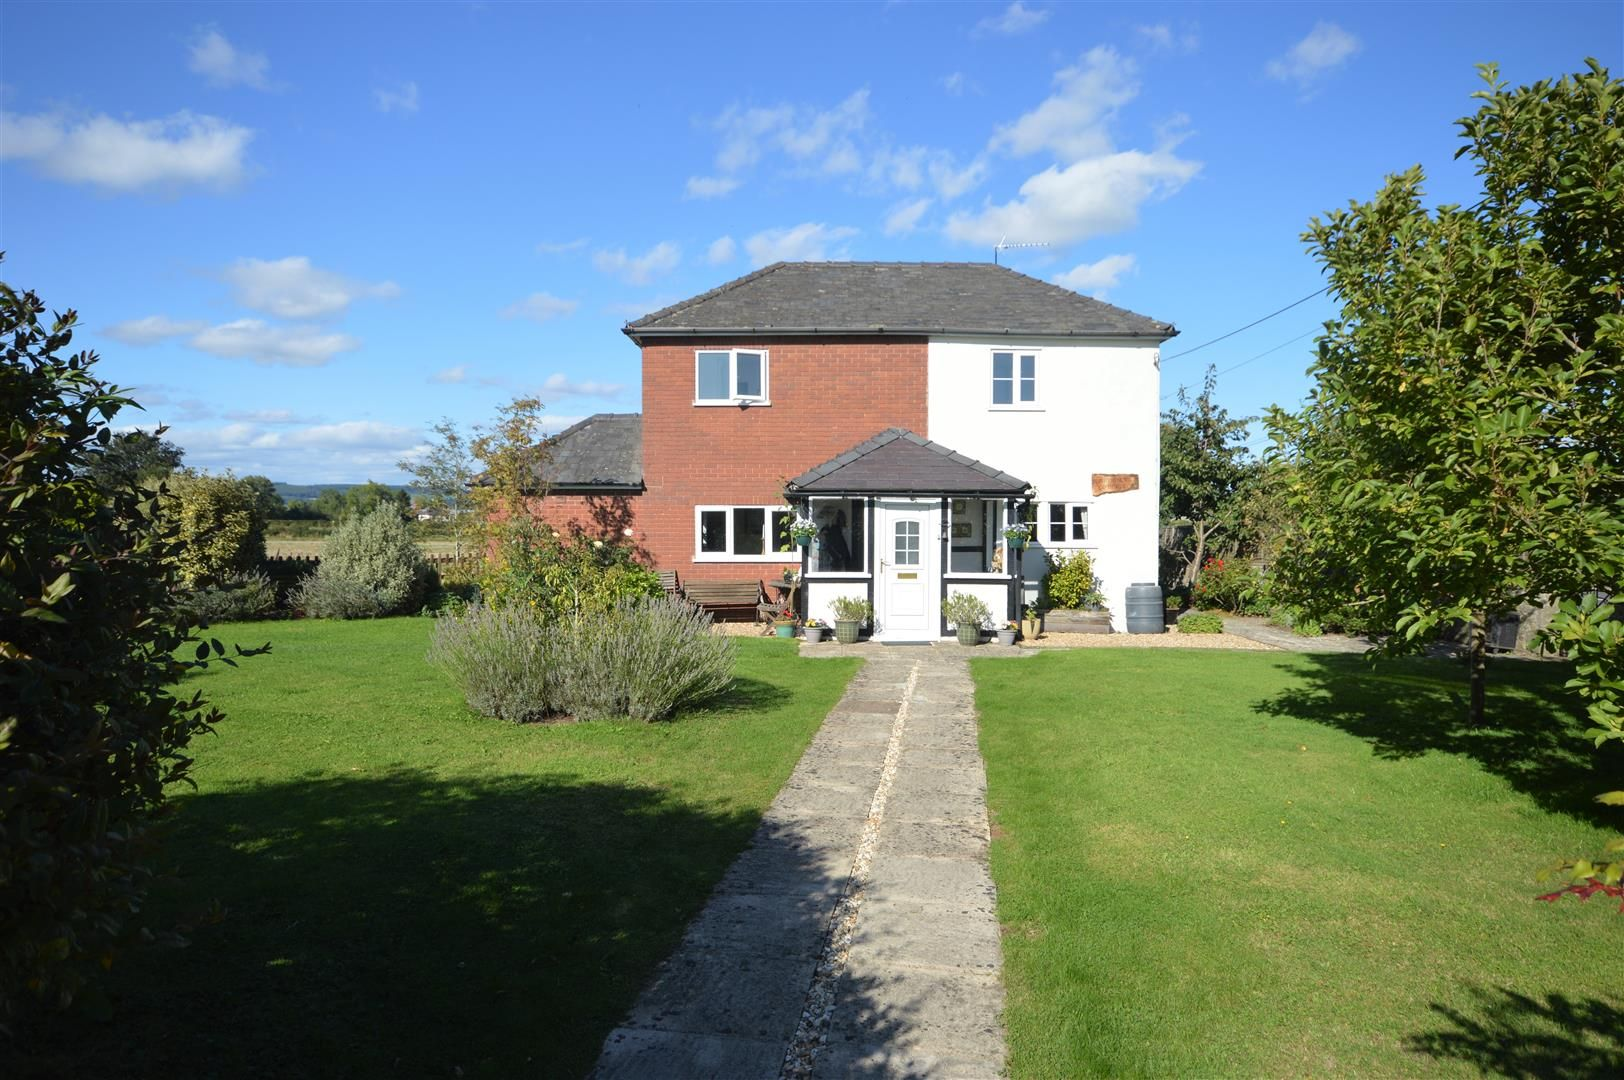 4 bed detached for sale in Shirlheath - Property Image 1